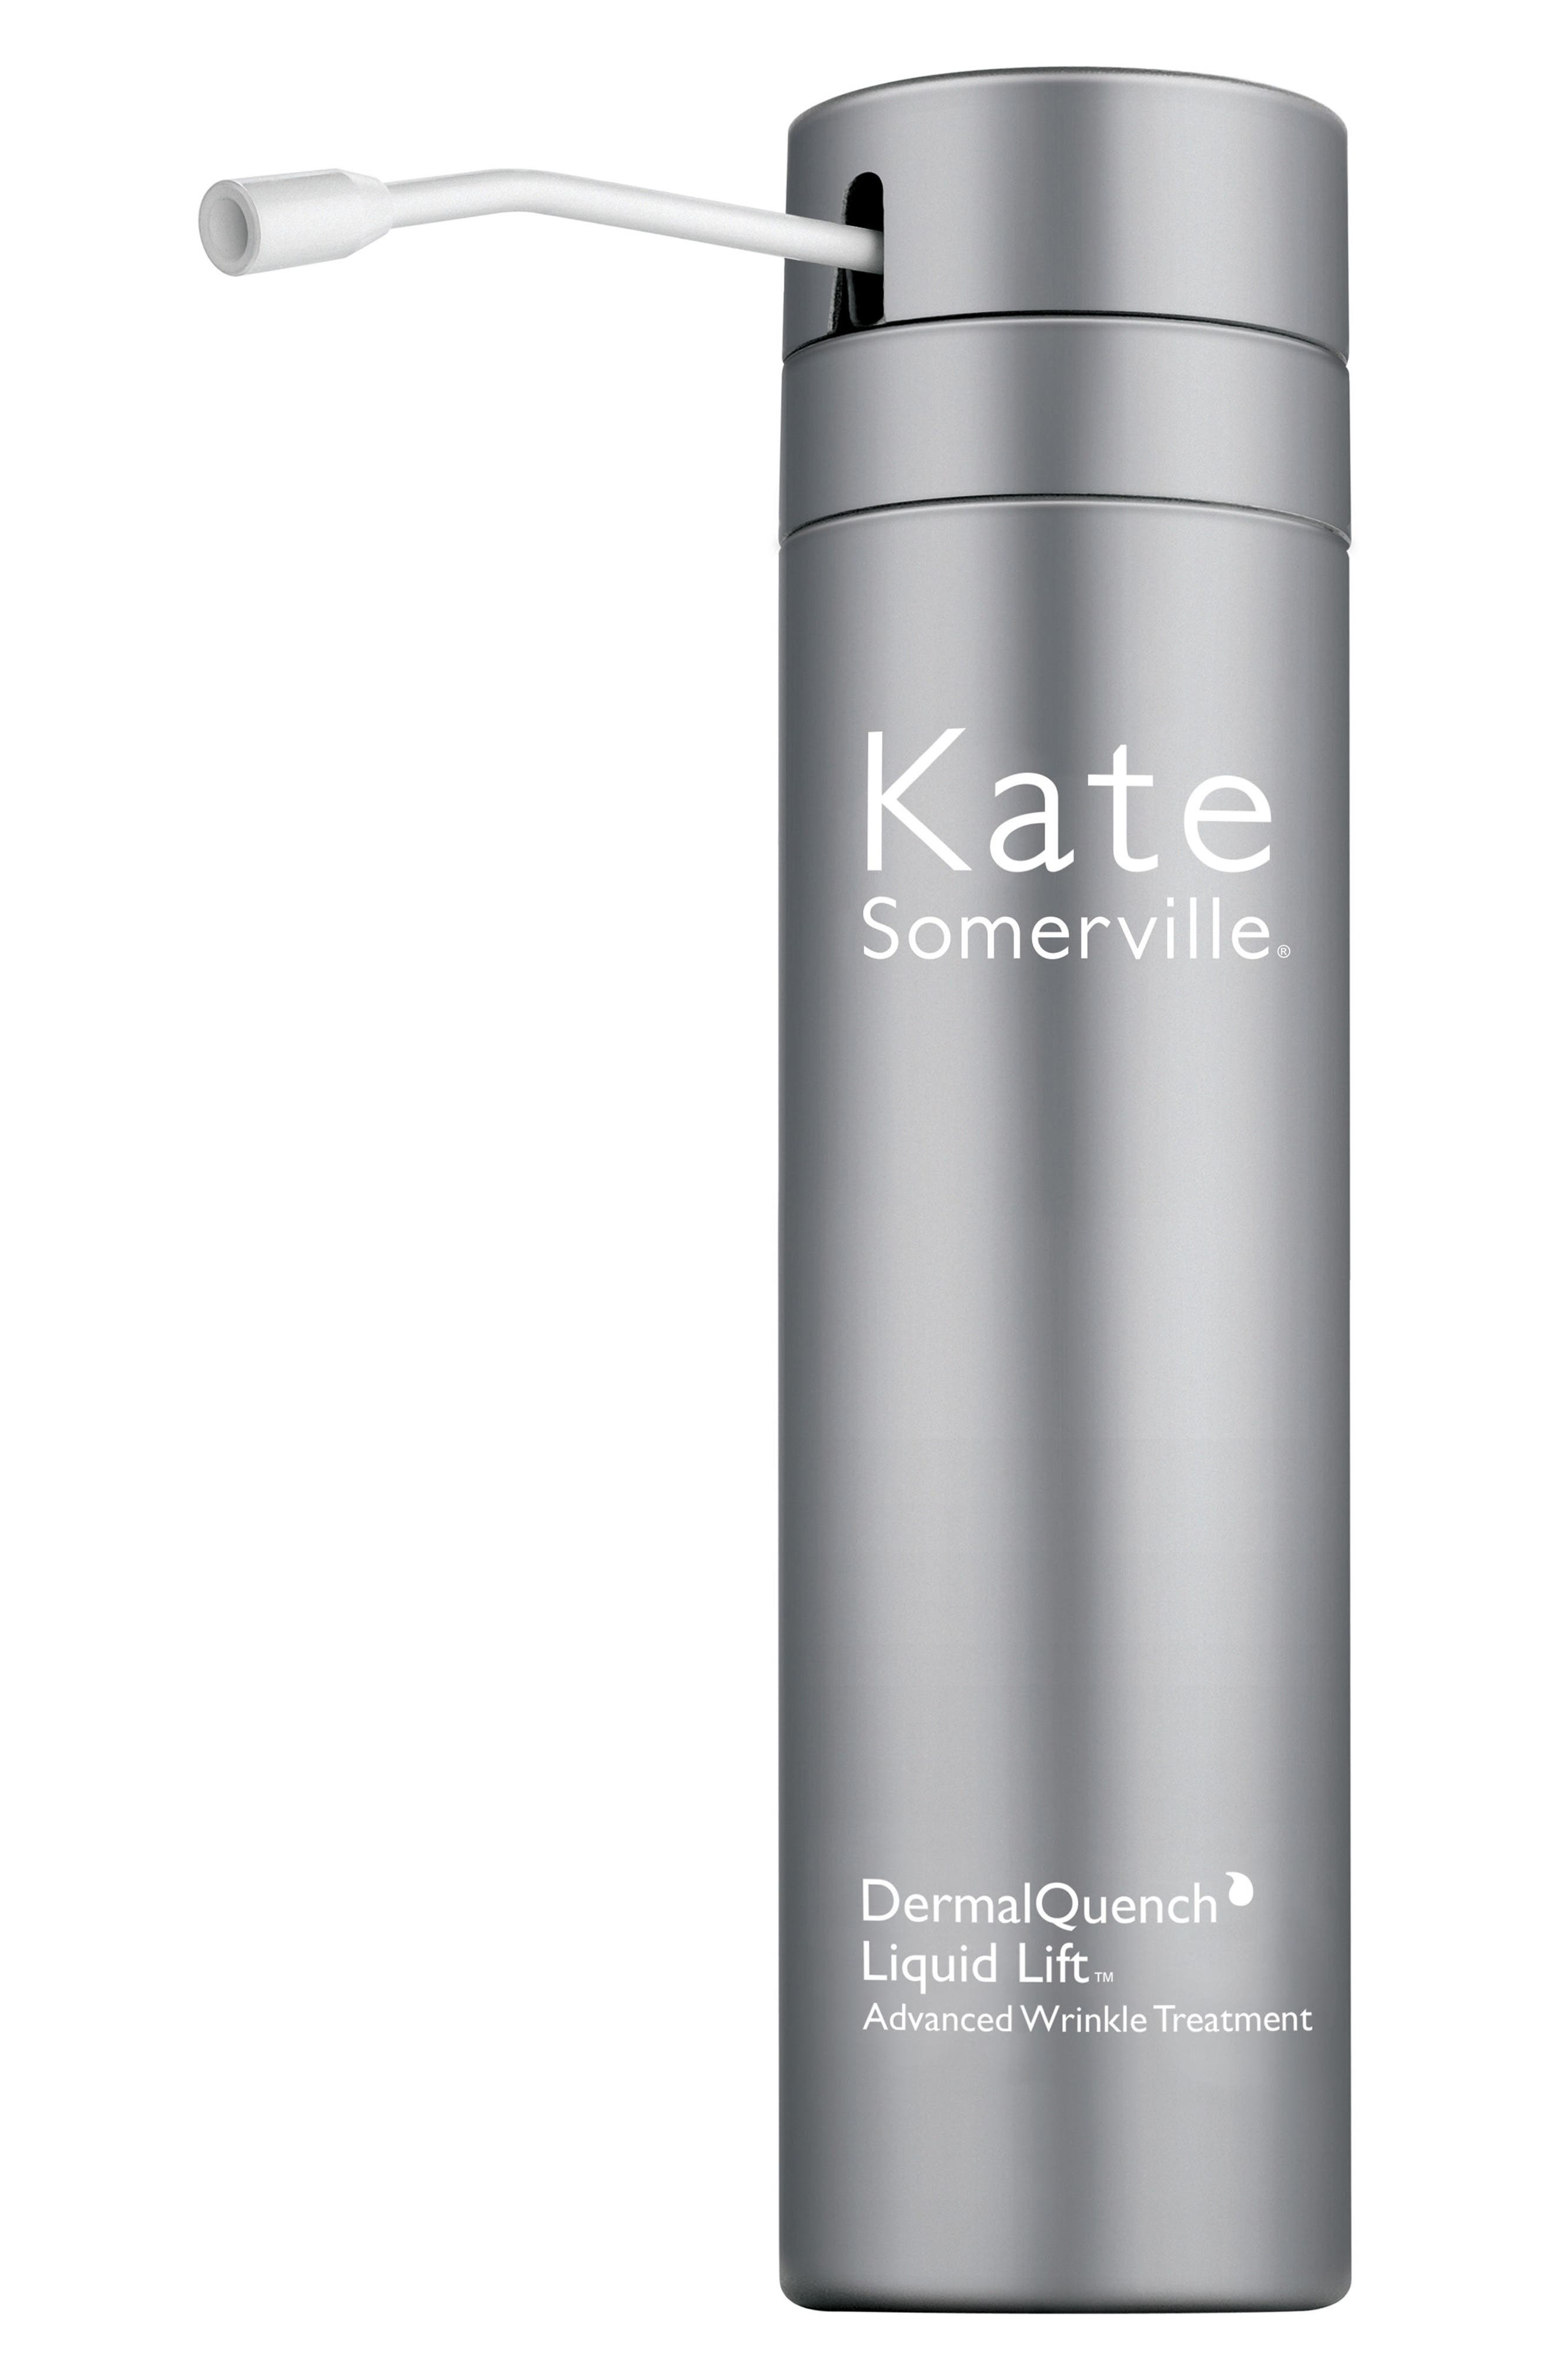 Main Image - Kate Somerville® DermalQuench Liquid Lift™ Advanced Wrinkle Treatment